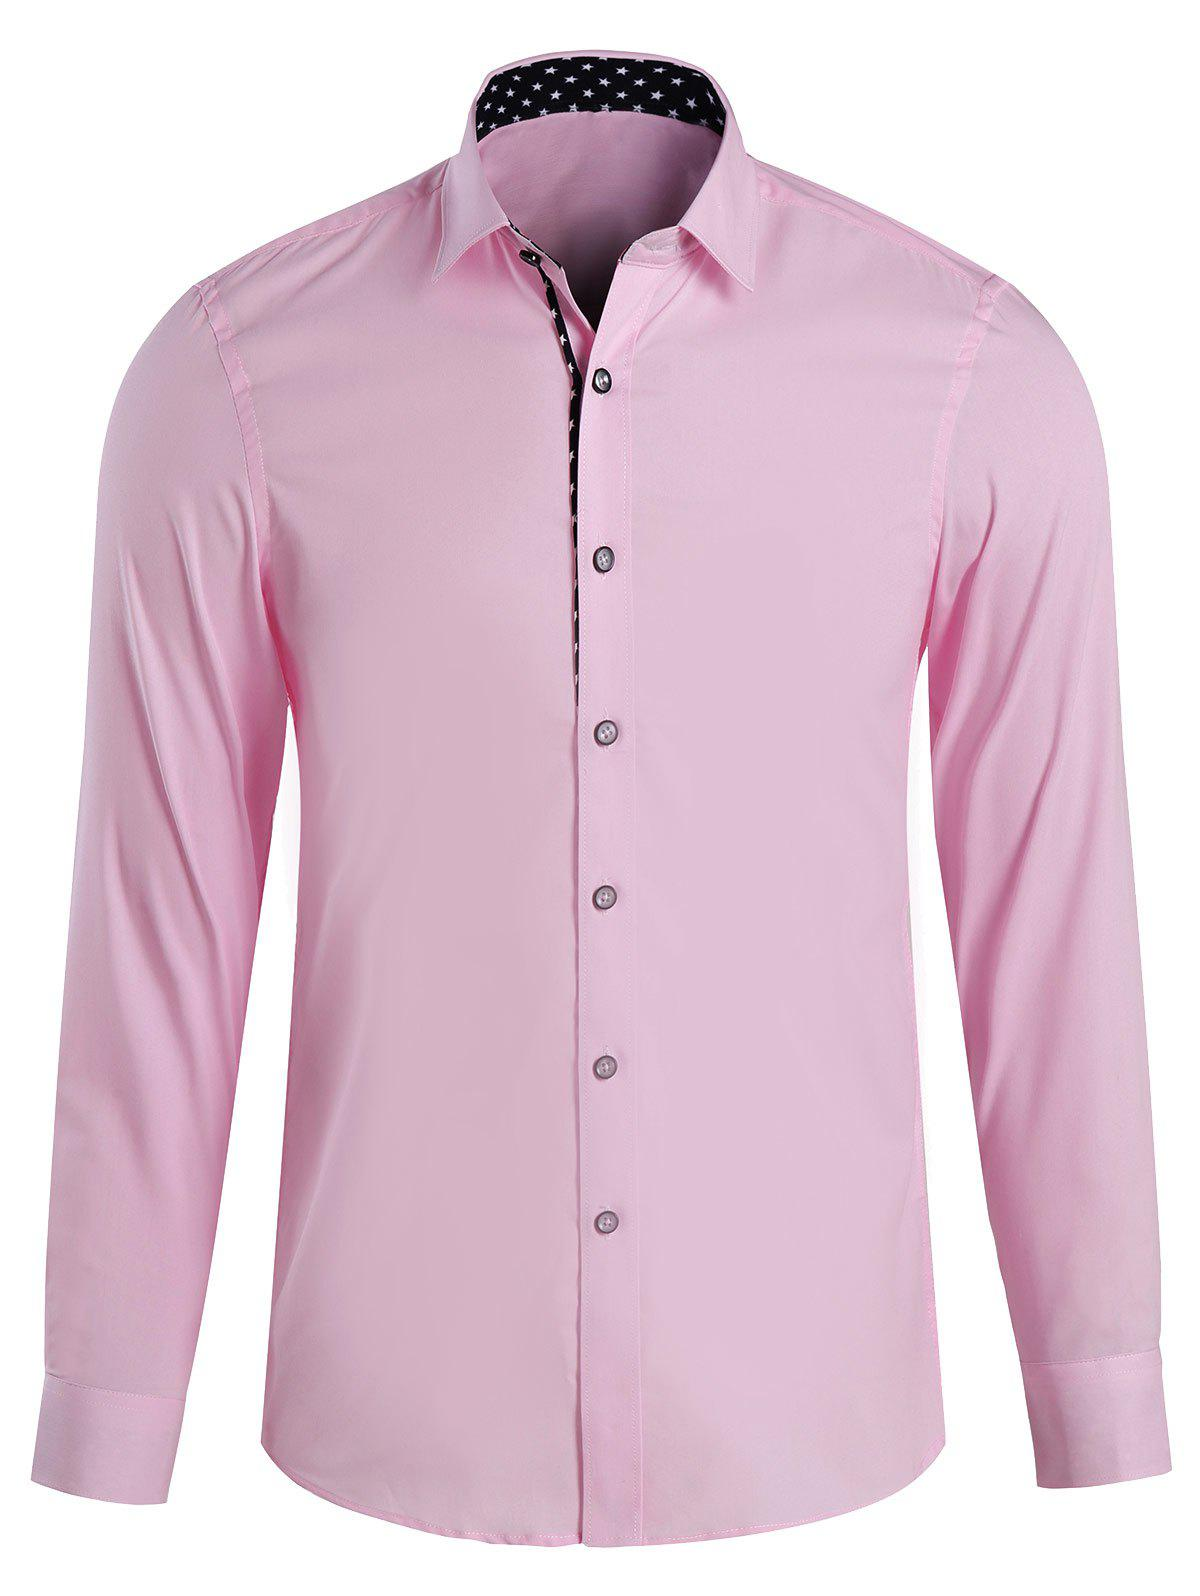 Men's Casual Printed Turn Down Collar Shirts - PINK 4XL